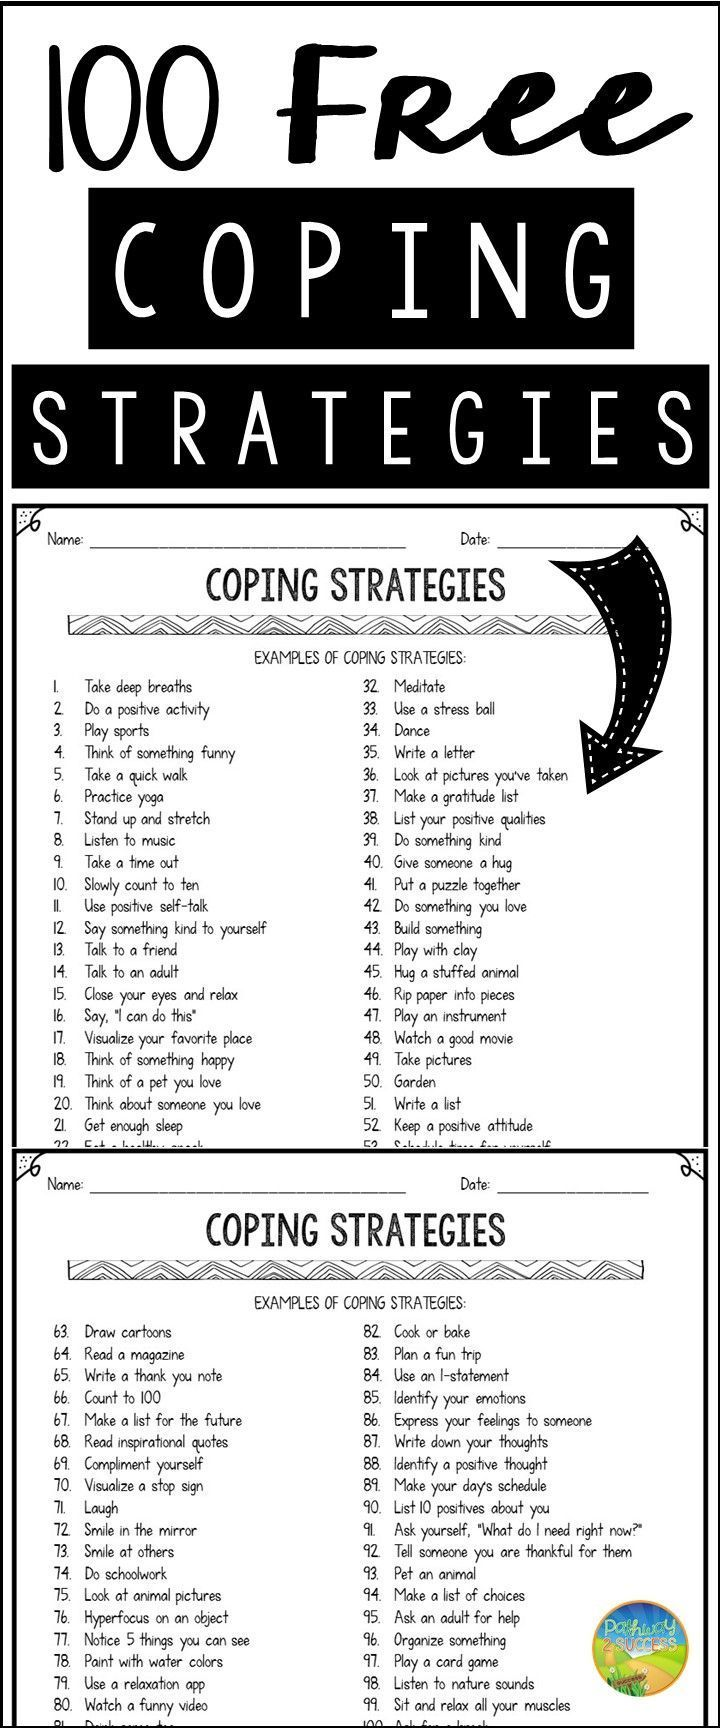 It's tough being an OSHC sometimes. Here are 100 FREE coping strategies for anxiety, anger, depression, and more which could help you.